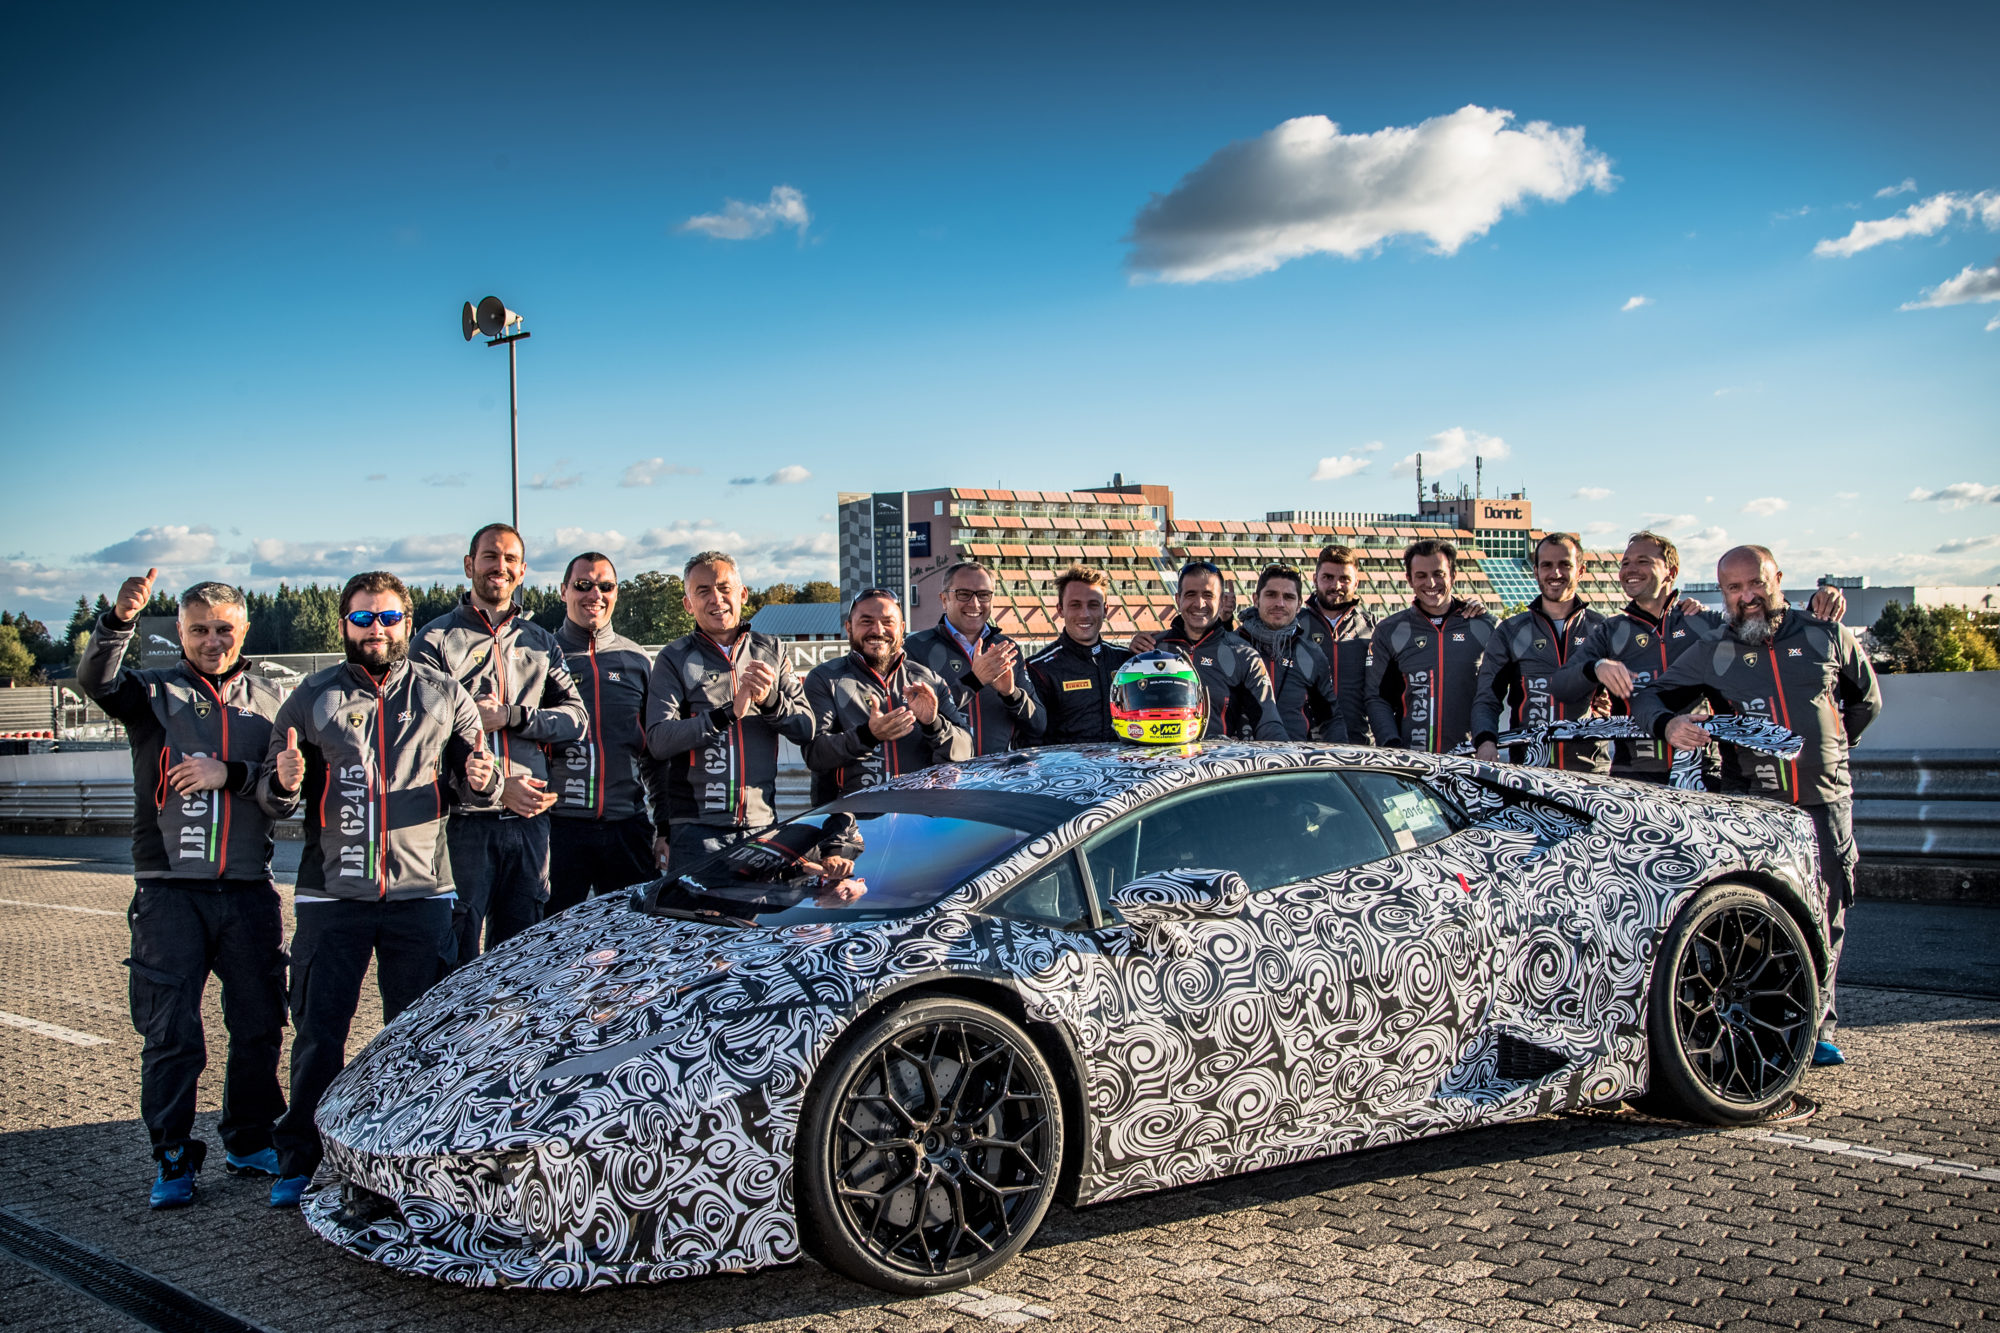 Lamborghini Huracán Performante Sets Lap Record at Nürburgring Nordschleife